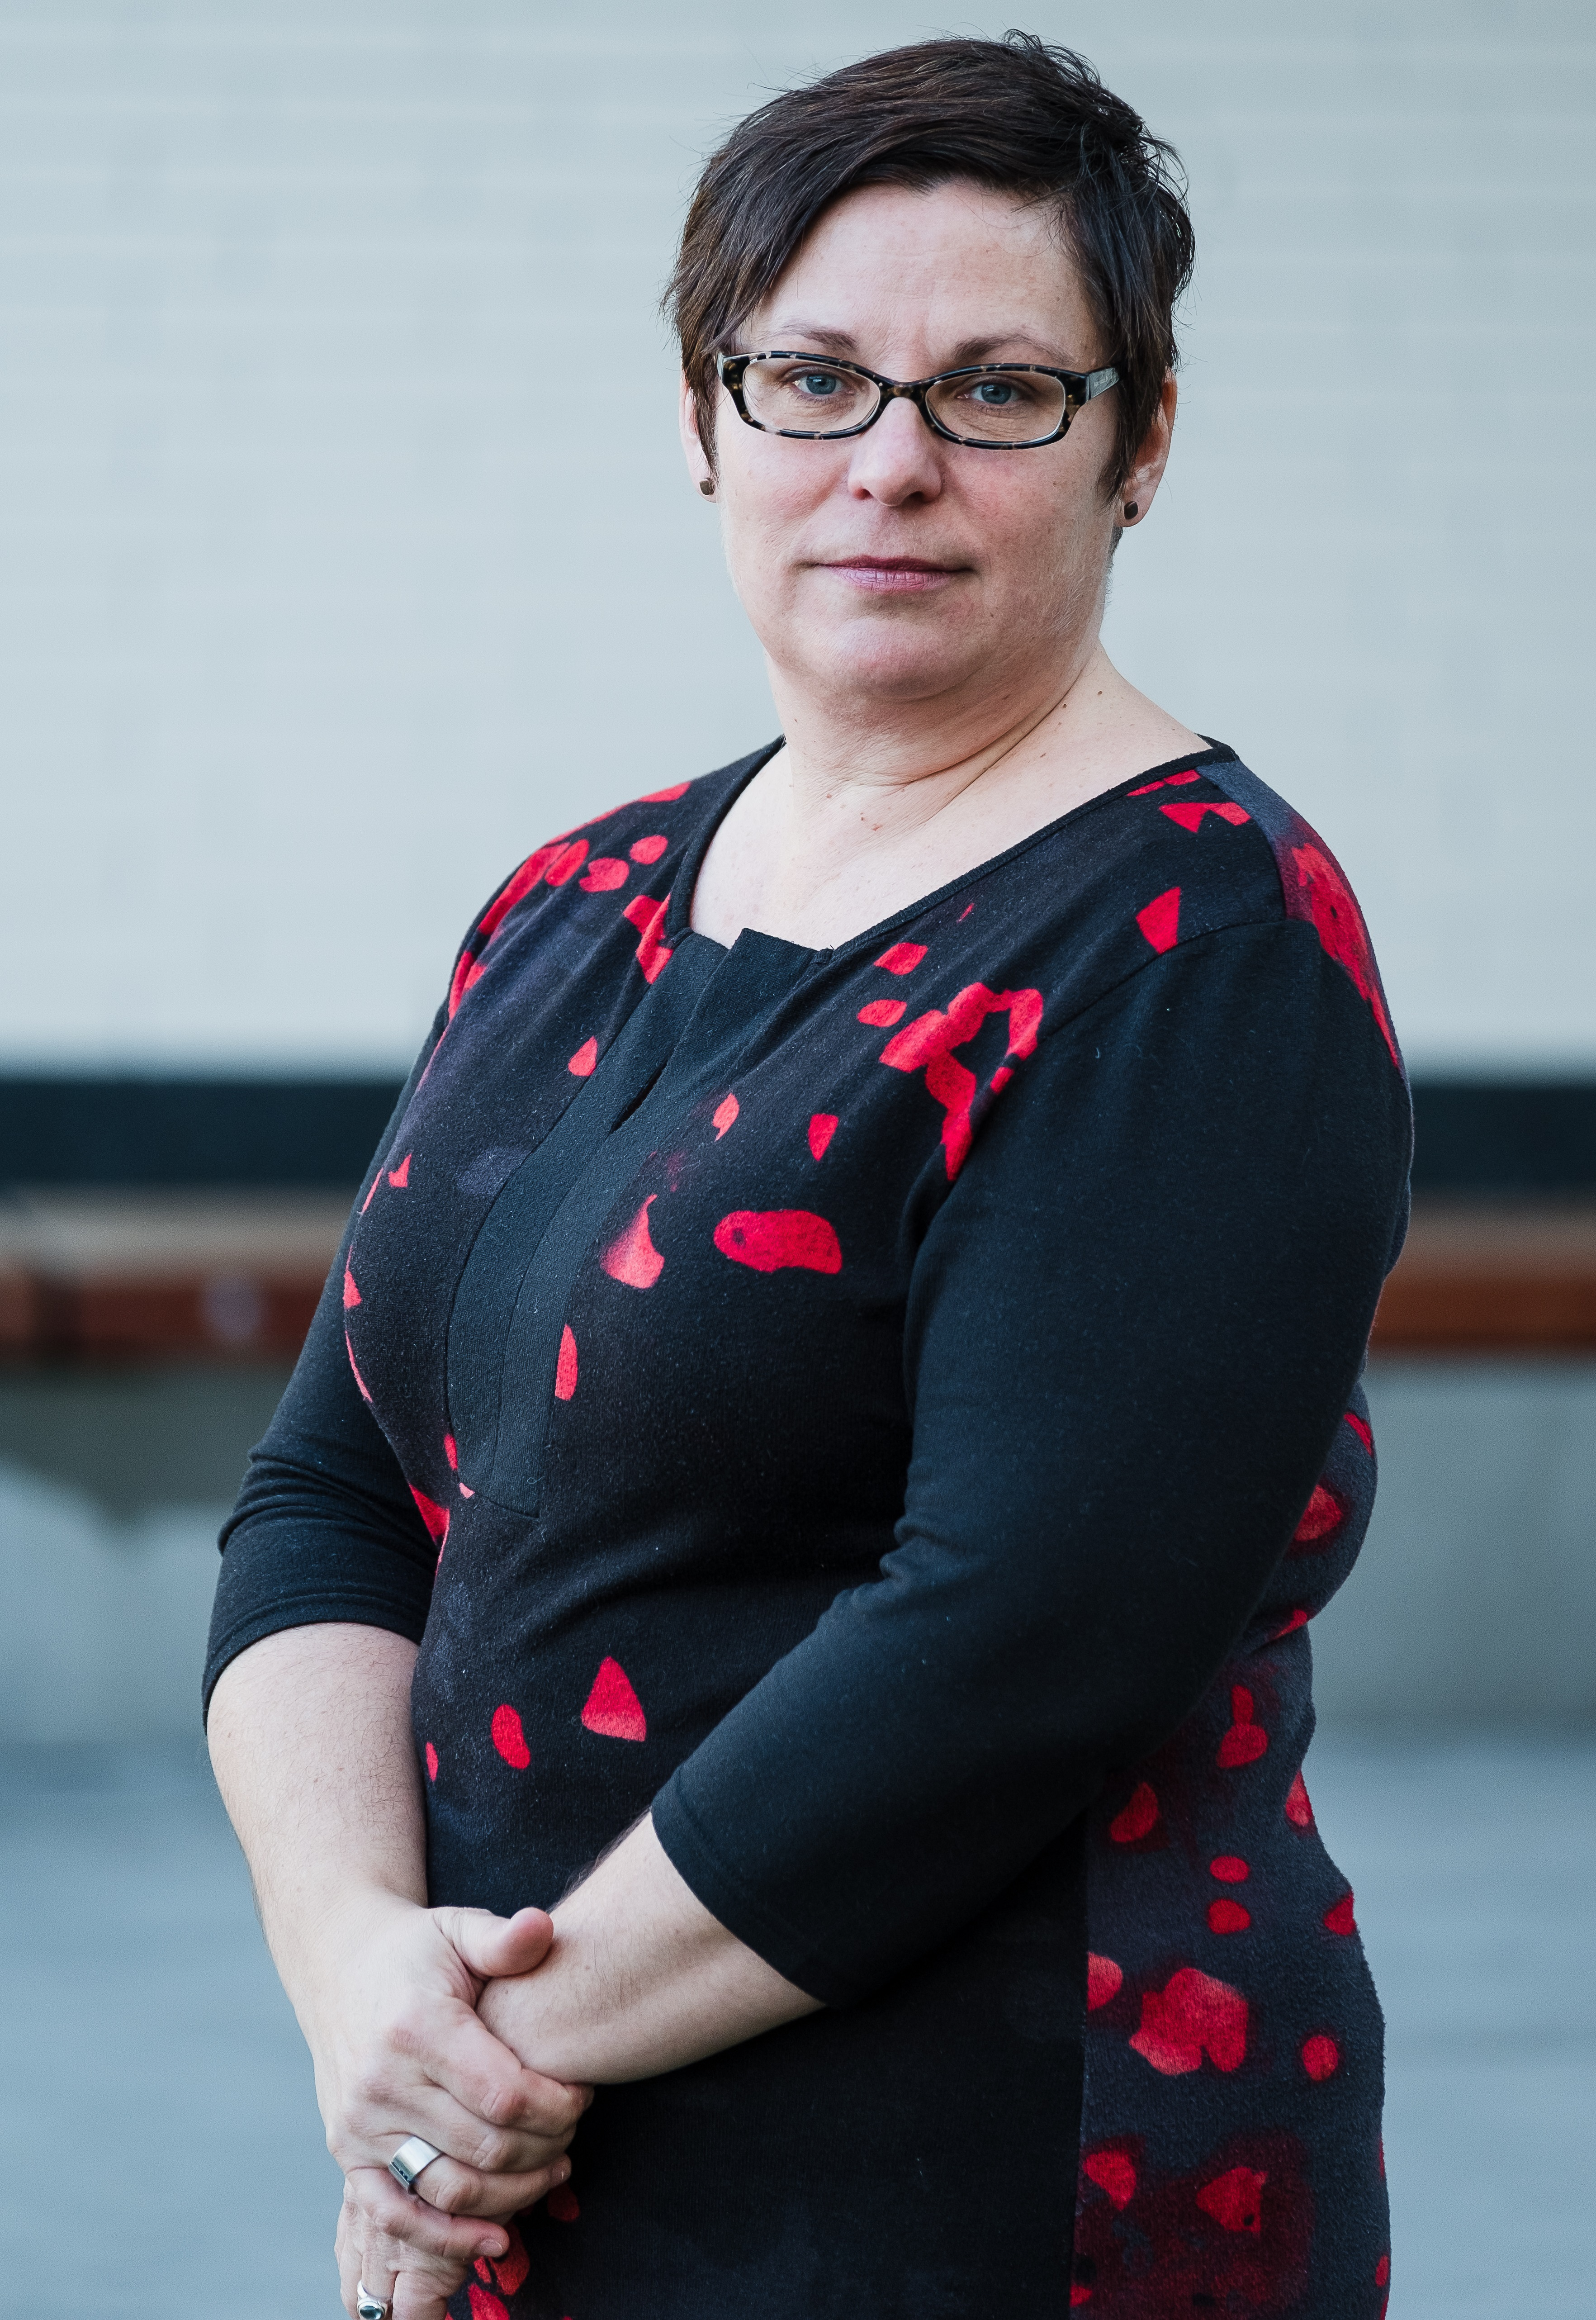 Law professor Debra Parkes says community-based release options available for Indigenous people go underused. (Geoff Lister)